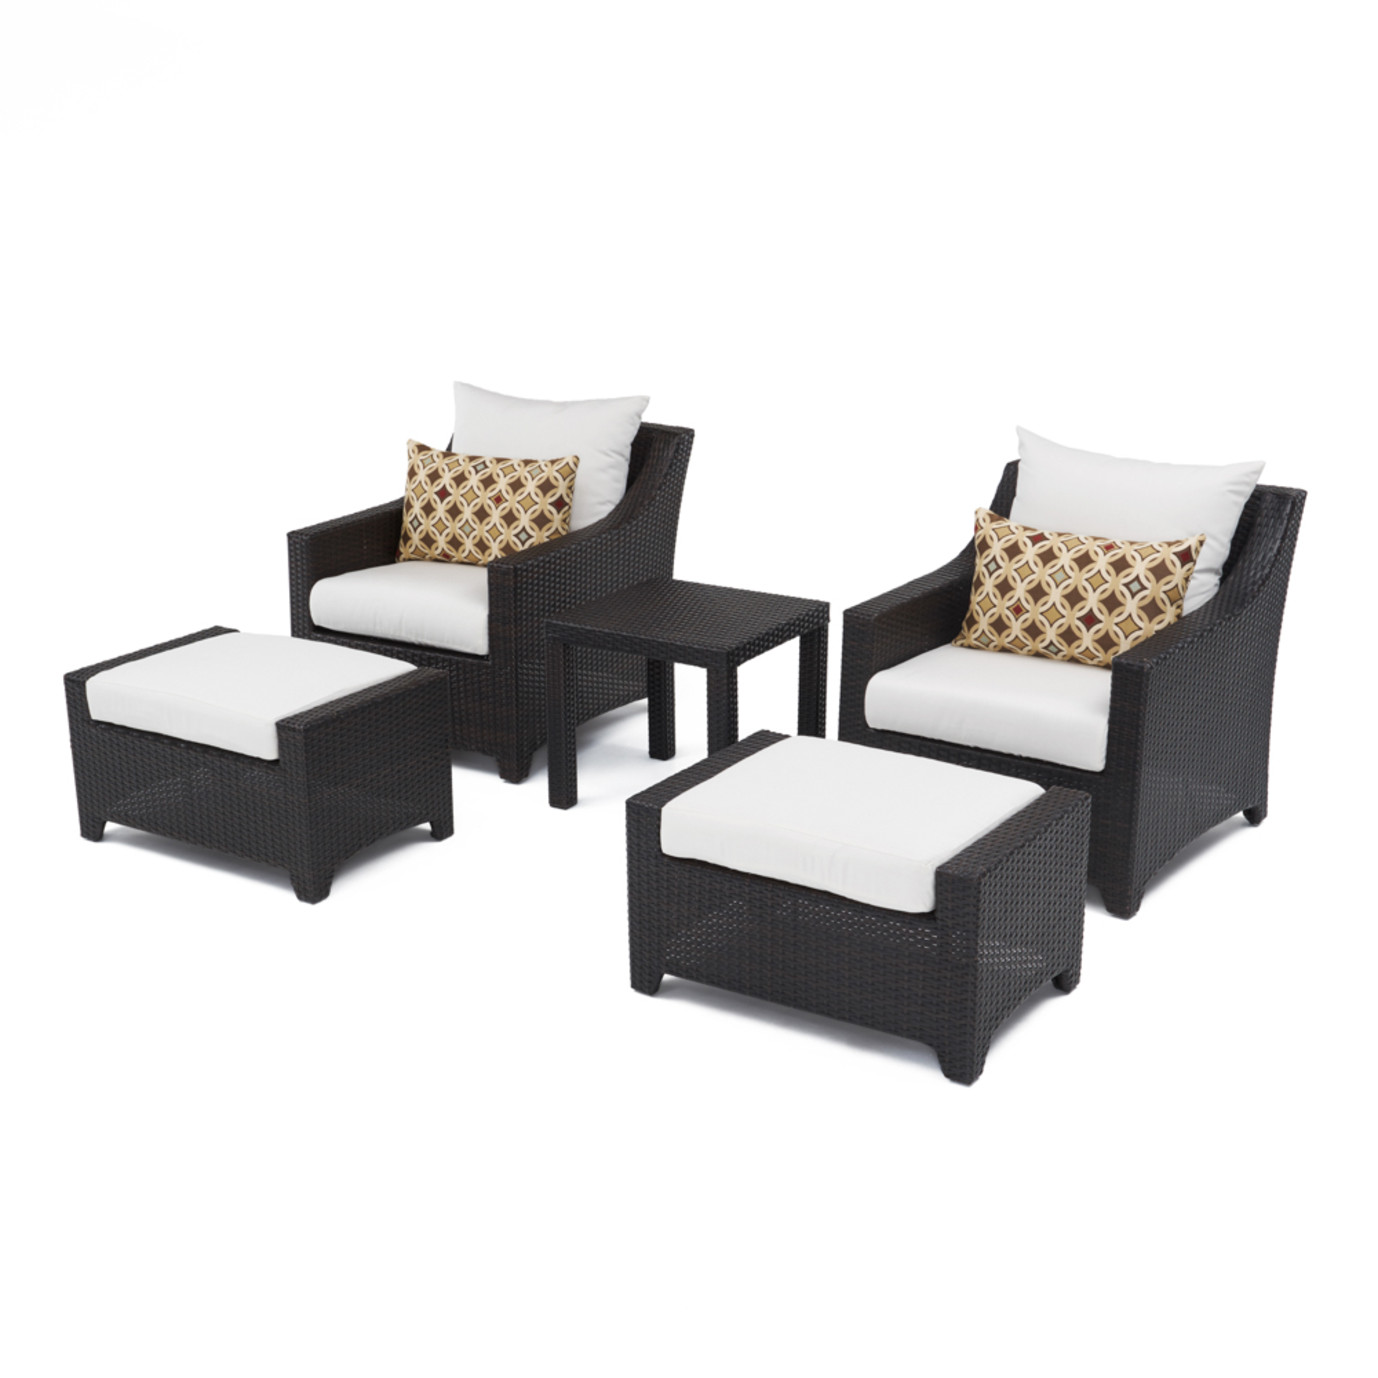 Deco™ 5 Piece Club Chair and Ottoman Set - Moroccan Cream